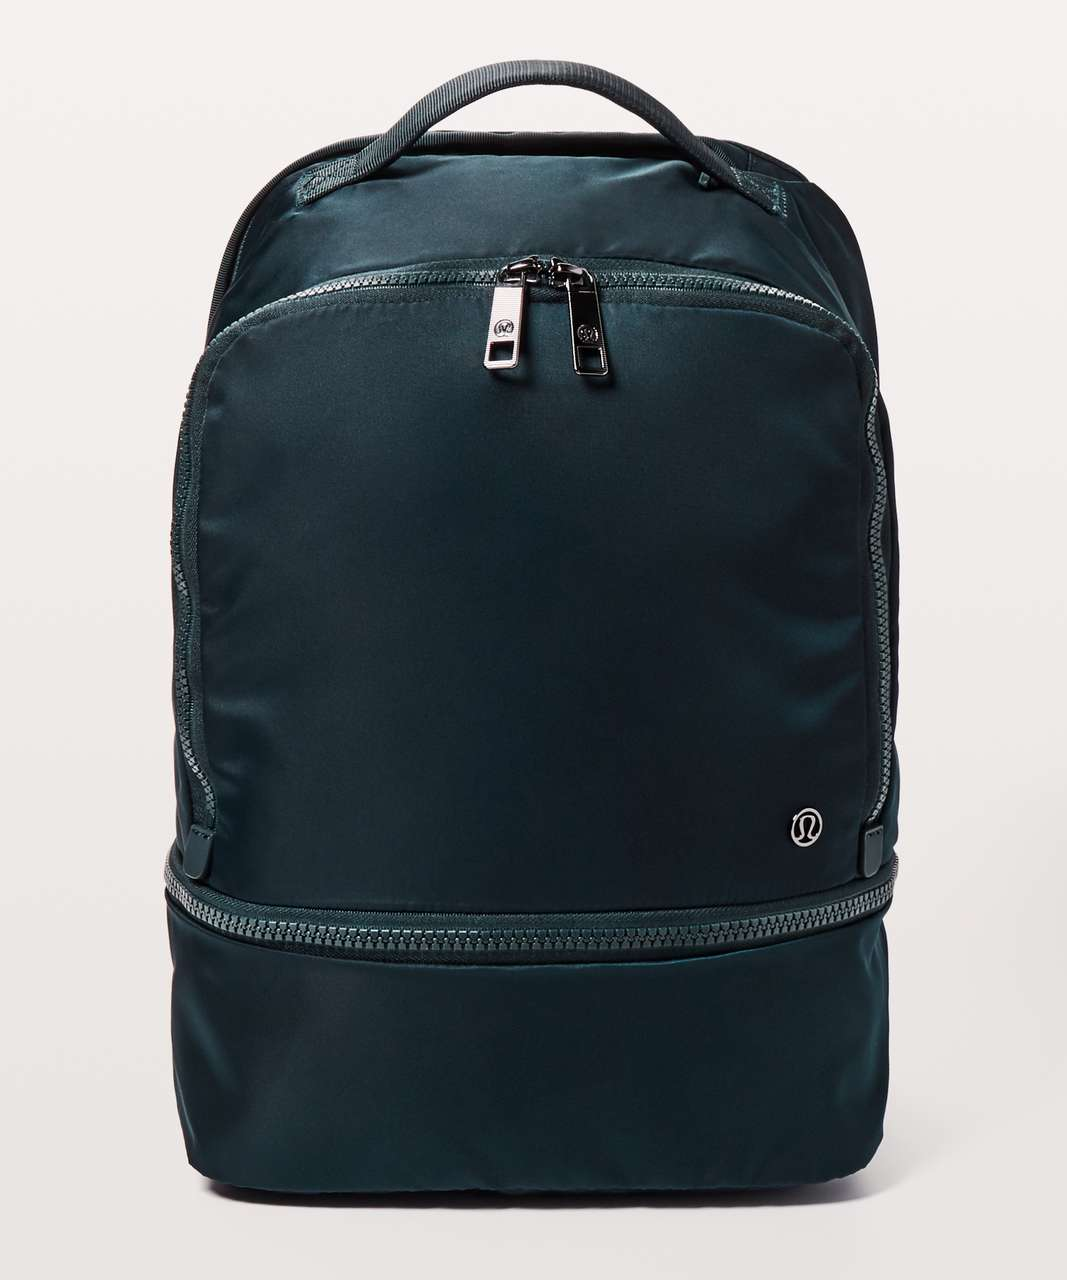 Lululemon City Adventurer Backpack 17L - Nocturnal Teal